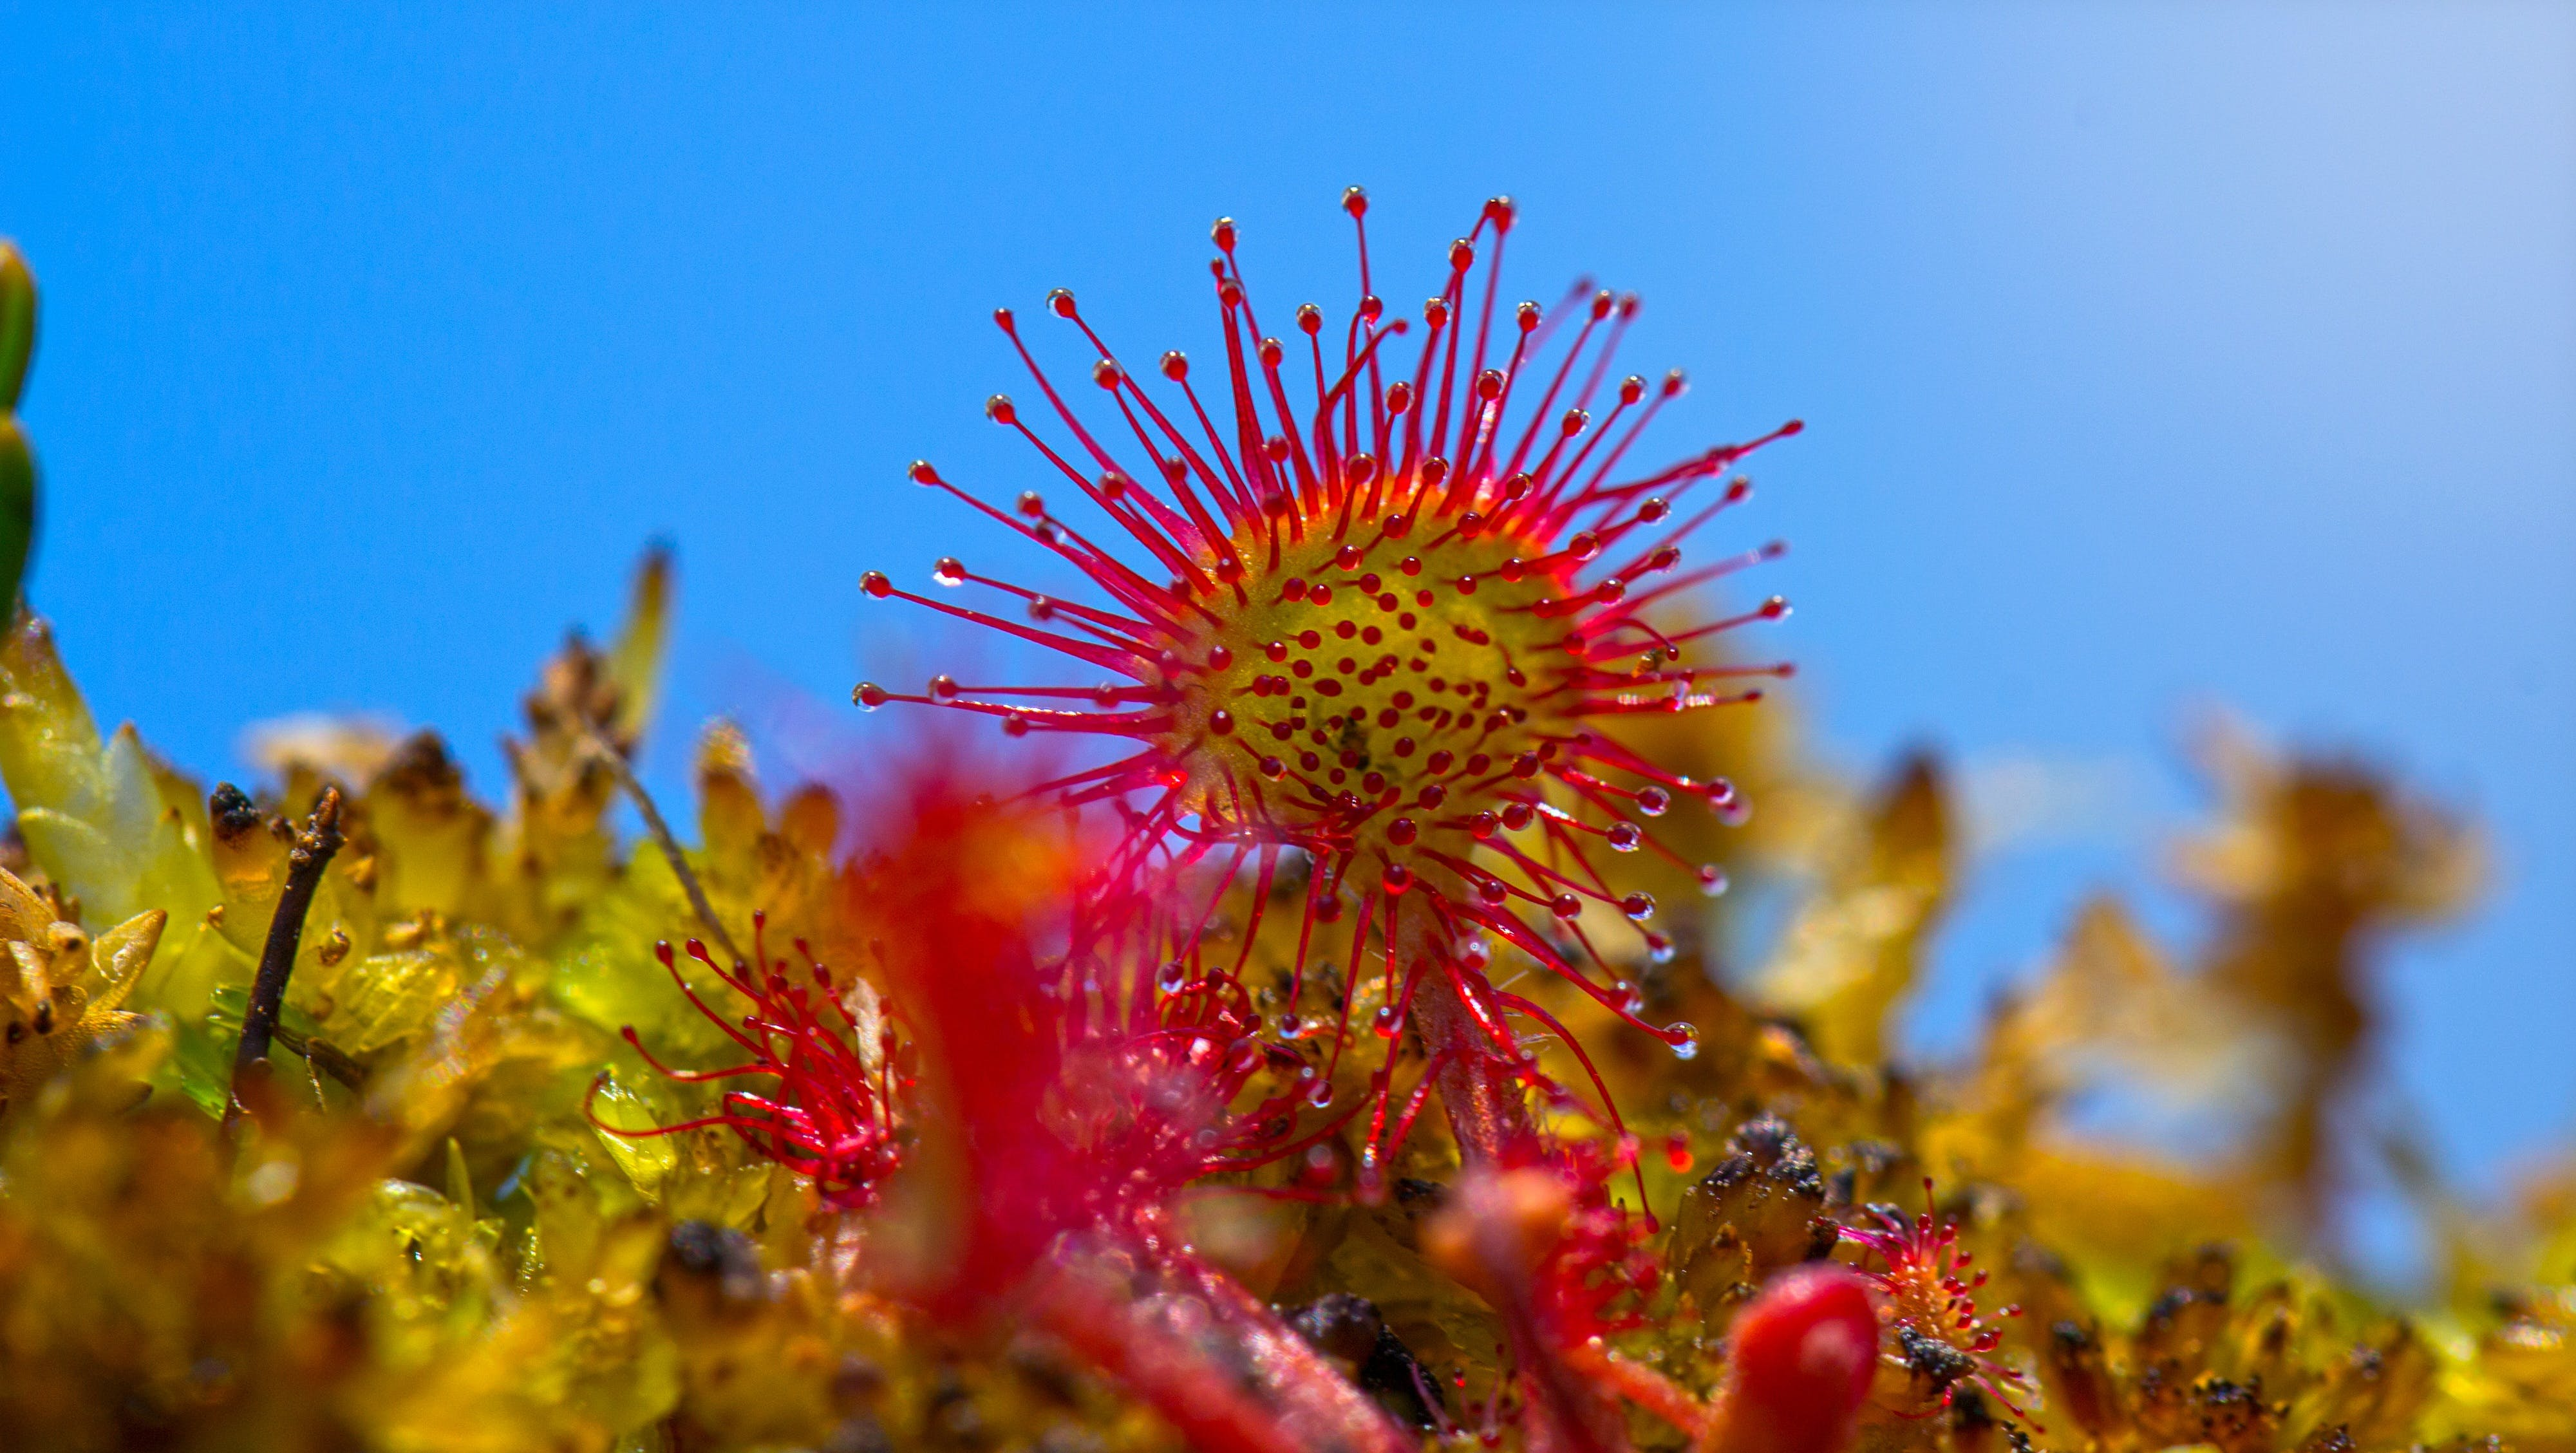 Yellow Red Flower during Daytime